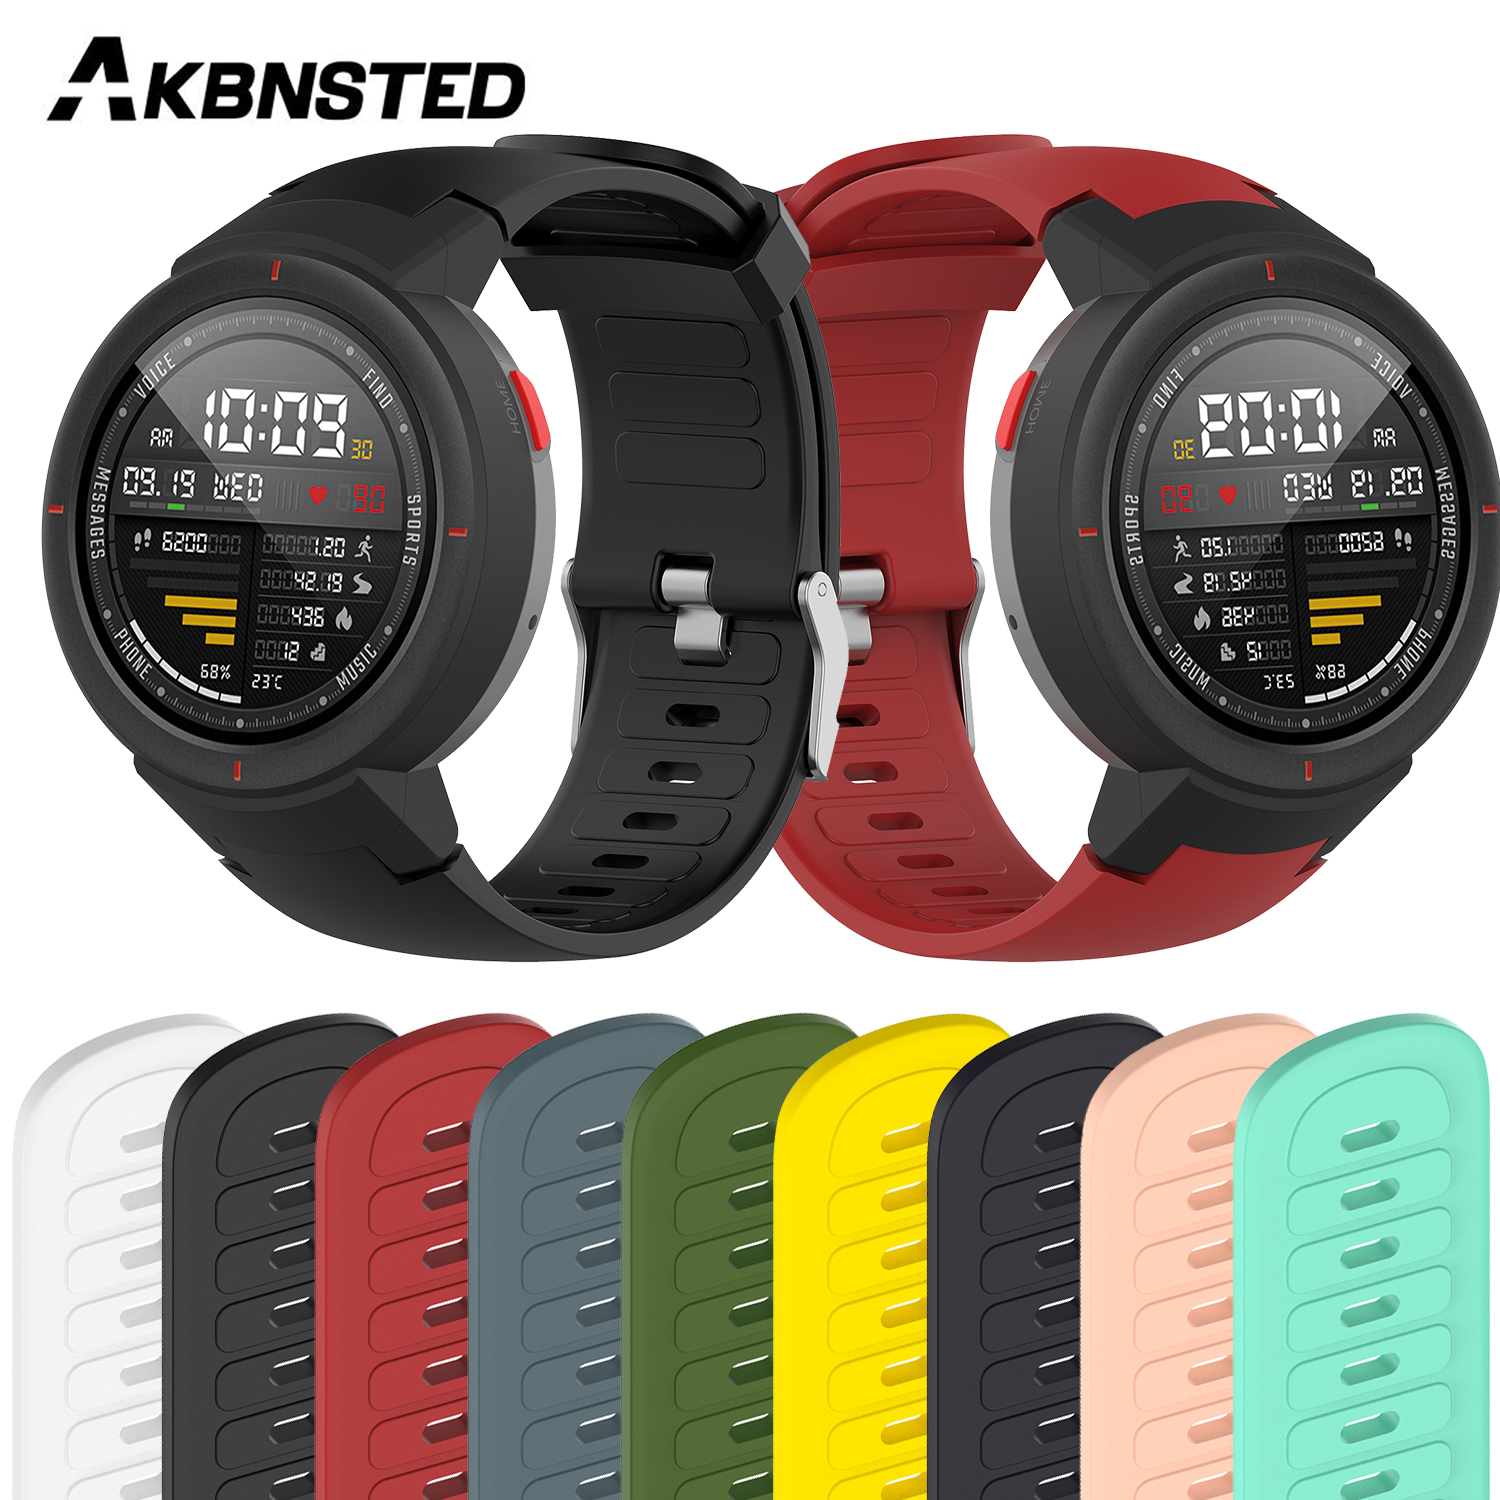 AKBNSTED Soft Silicone Smart Watch Wristband For Huami Amazfit Verge Smart Watch Replacement Bracelet Band Strap Accessories